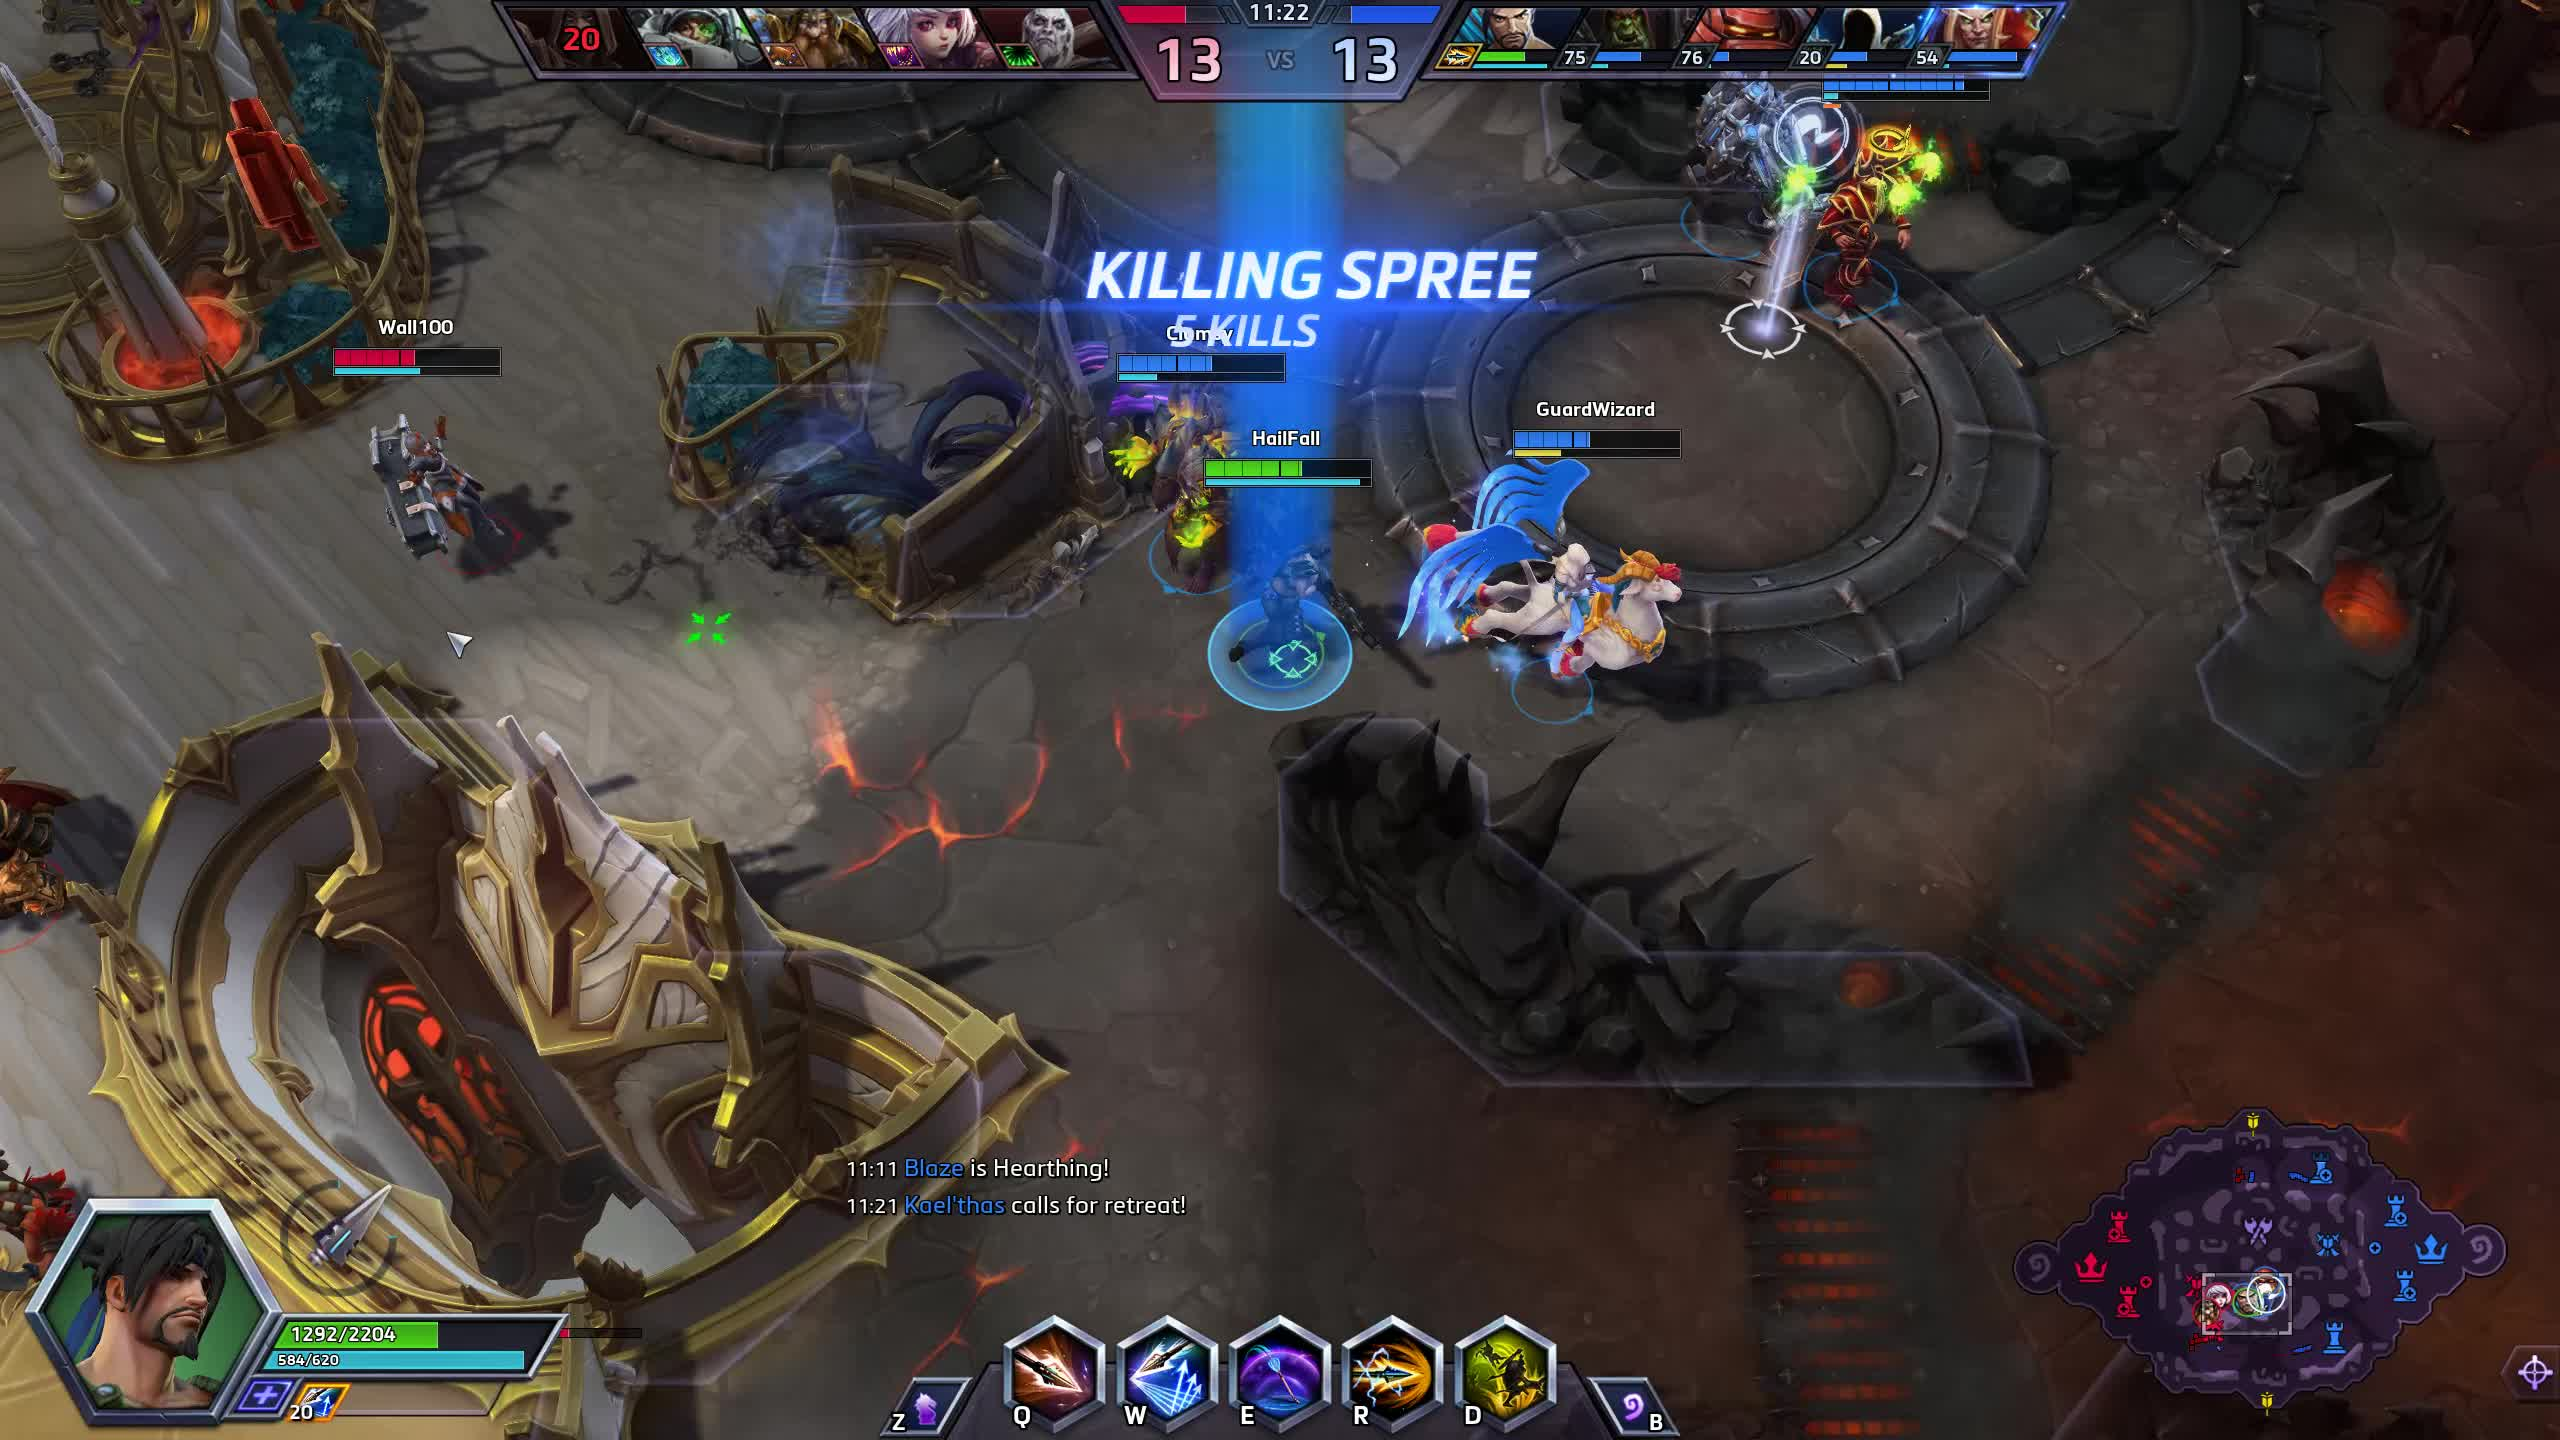 heroesofthestorm, Heroes of the Storm 2019.03.21 - 15.21.07.04.DVR GIFs